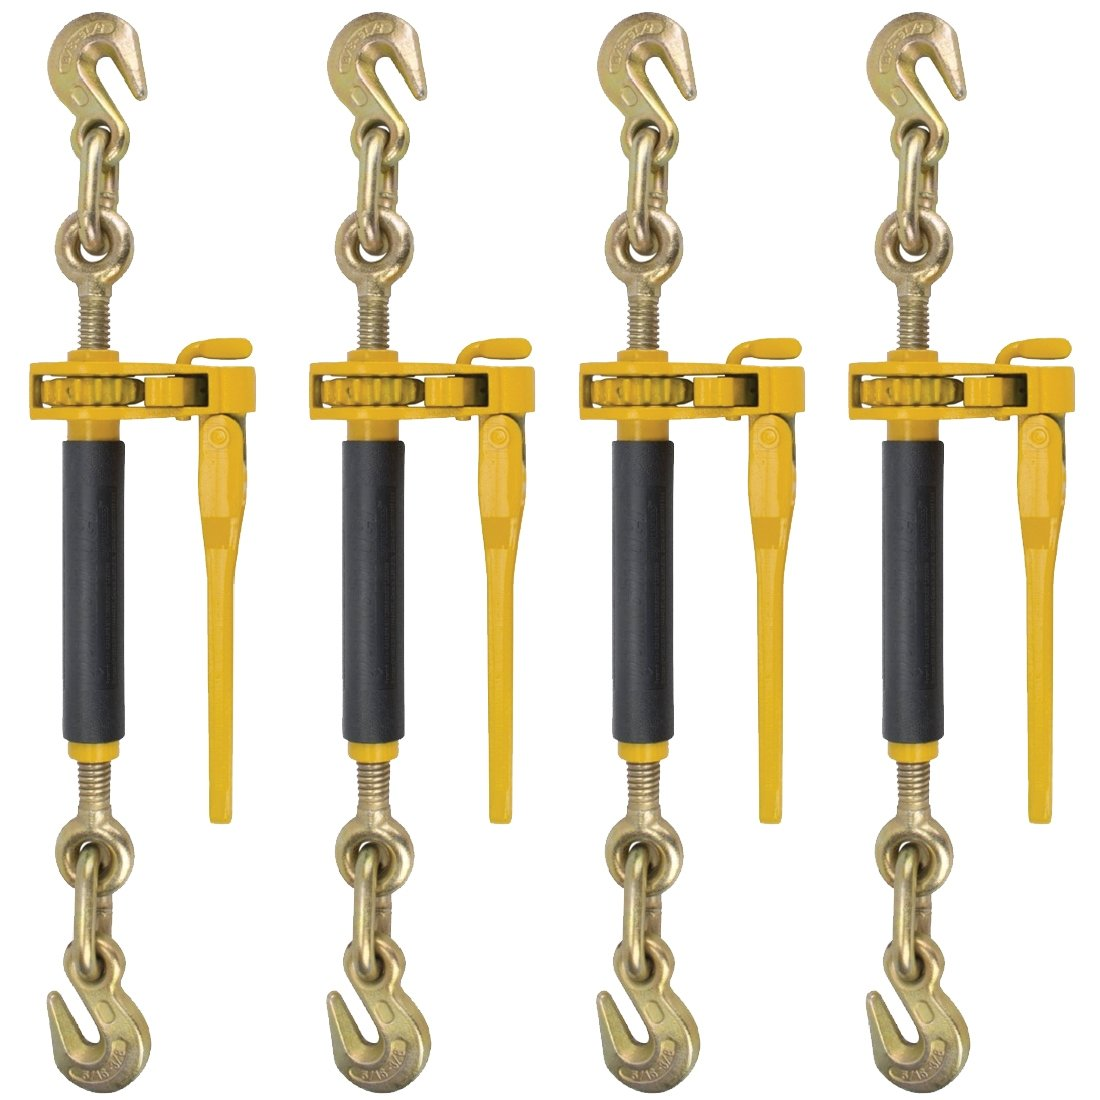 Peerless Ratchet Style Folding Handle Load Binder With 2 Grab Hooks - 7,100 lbs. Safe Working Load (For 5/16'' Grade 70, 3/8'' Grade 70 or 3/8'' Grade 80 Chain - Pack of 4)